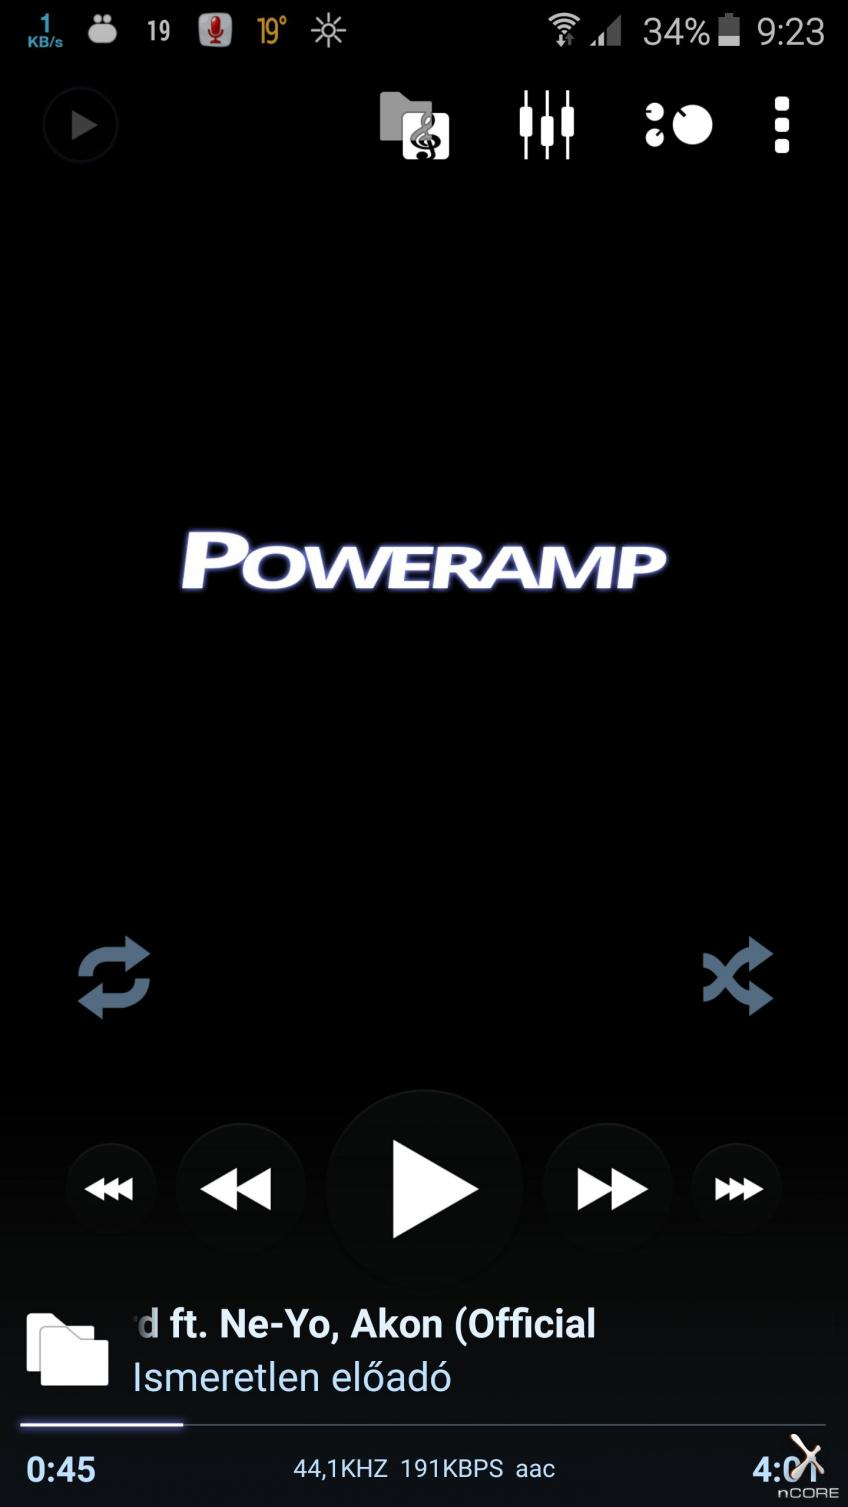 [Android] Poweramp Music Player v2.0.10.580